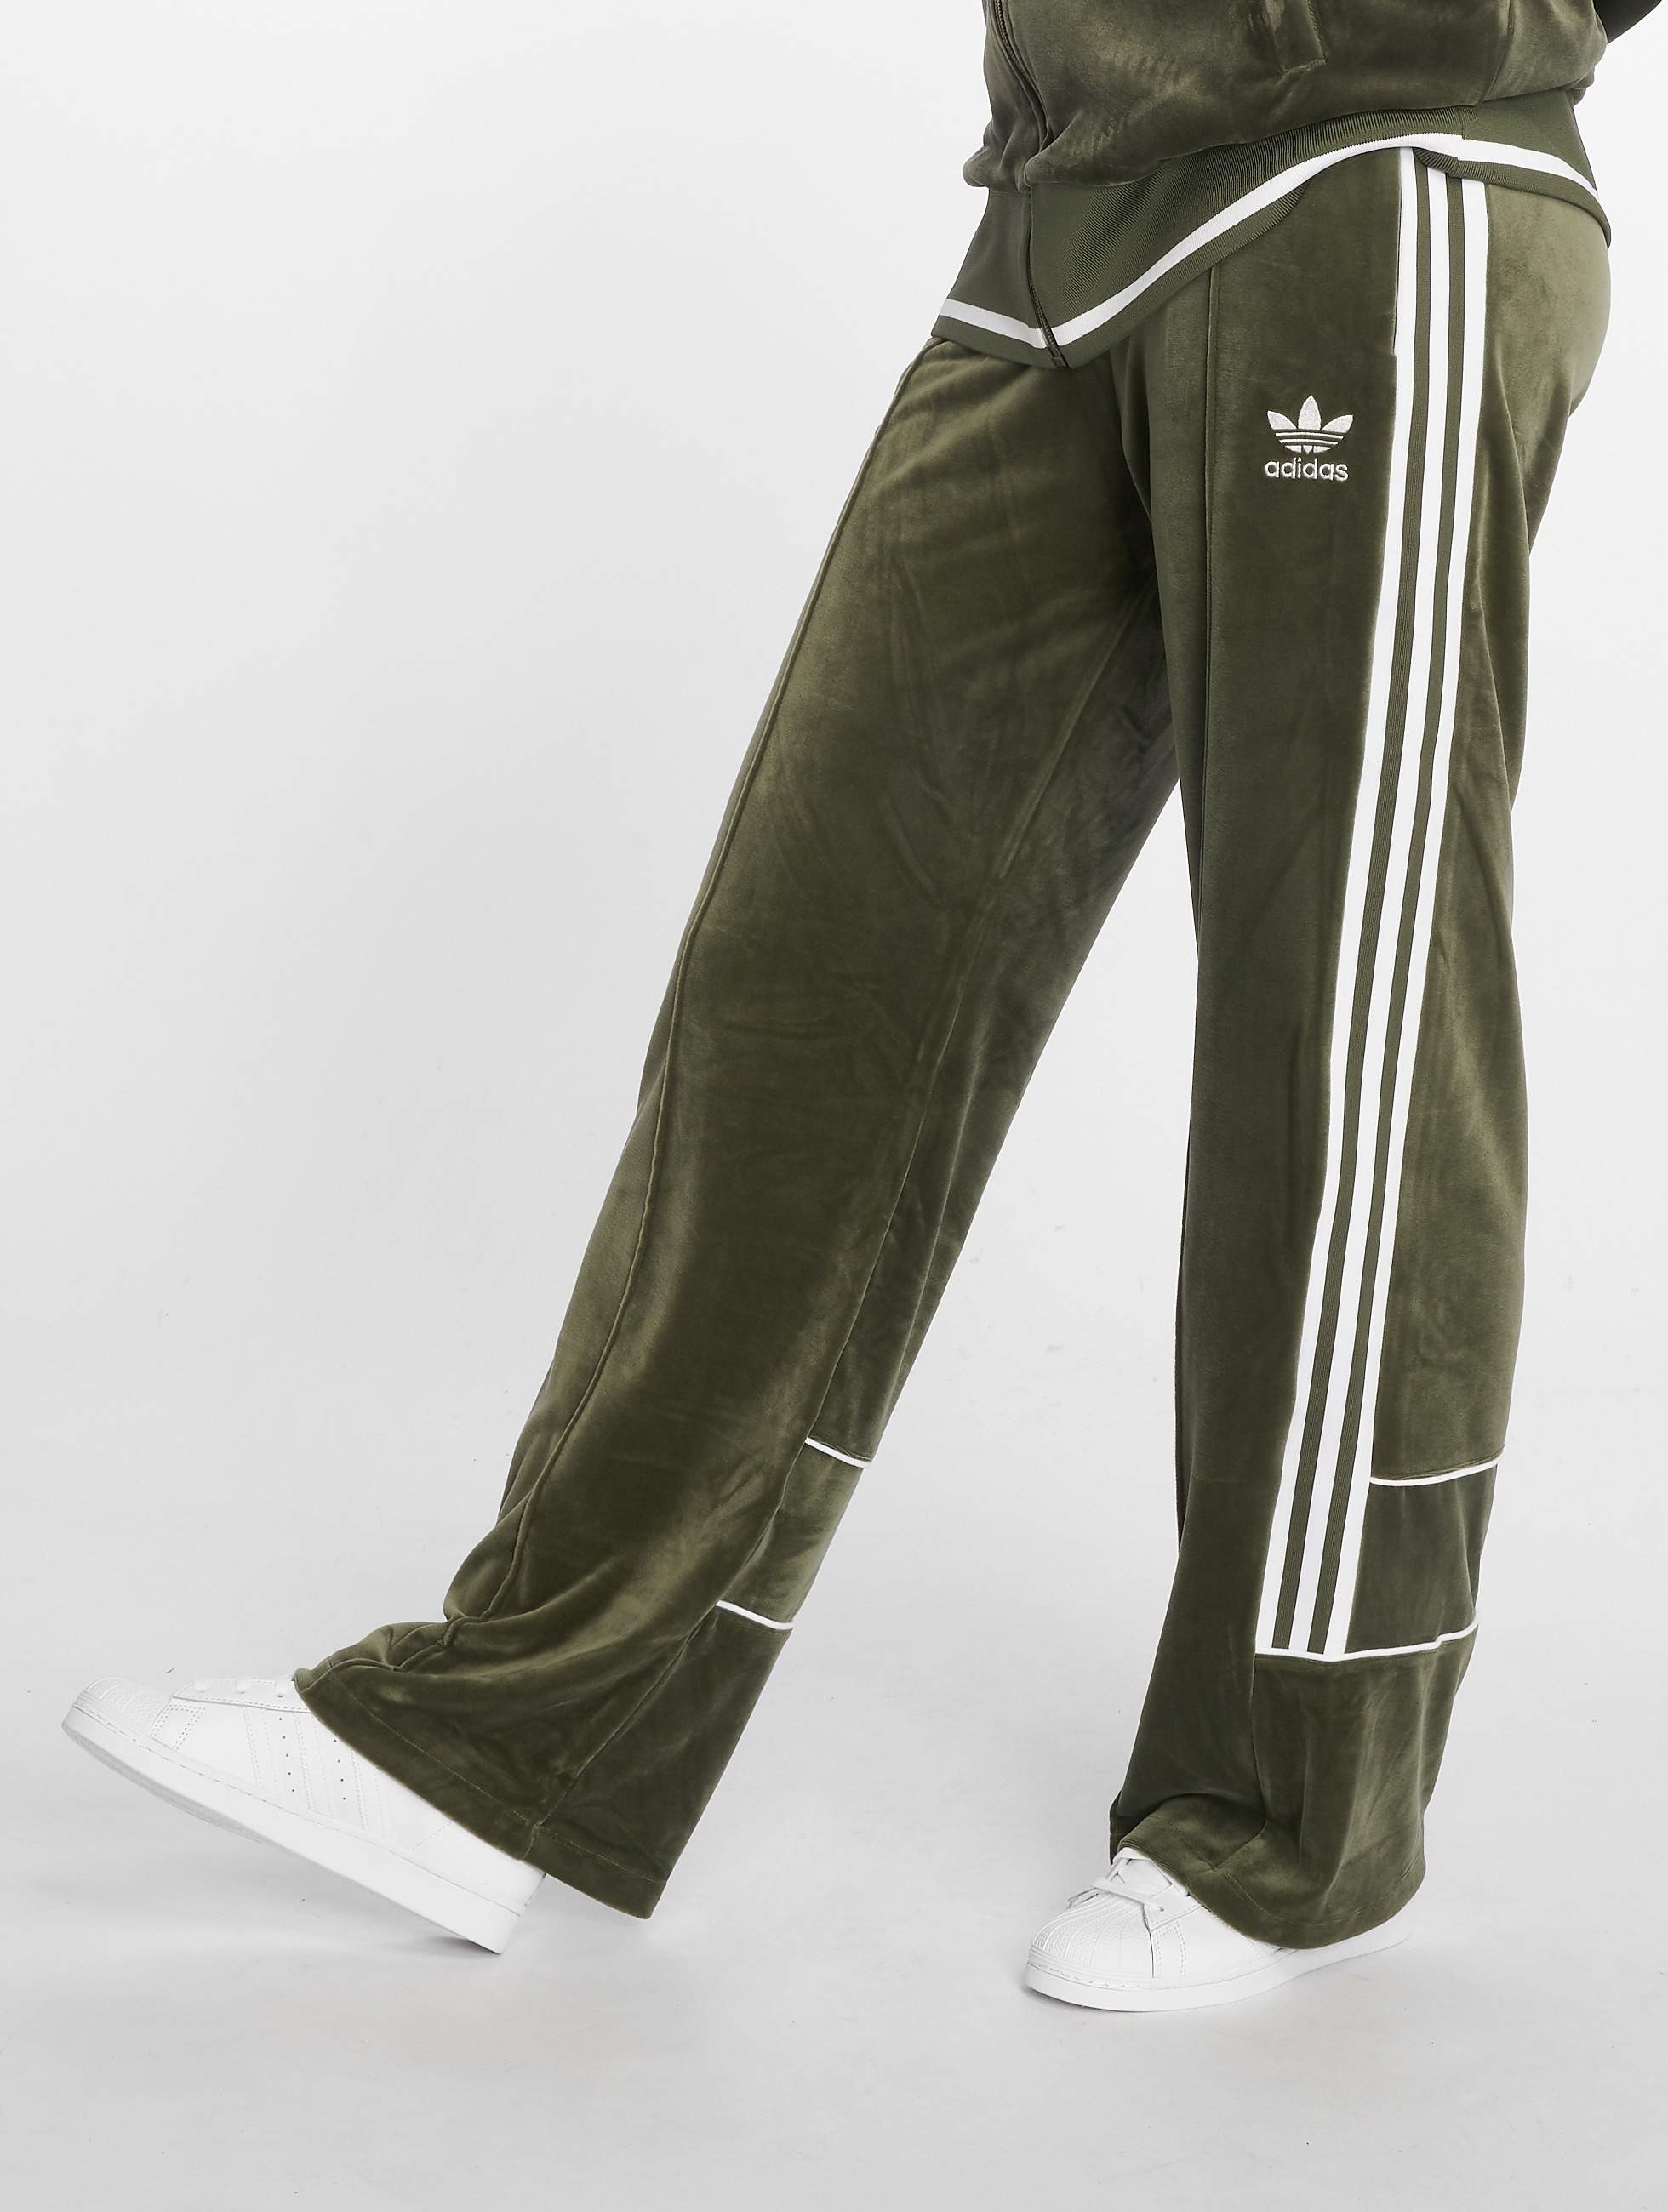 Joggingbroek Groen.Adidas Originals Broek Joggingbroek Track In Groen 499491